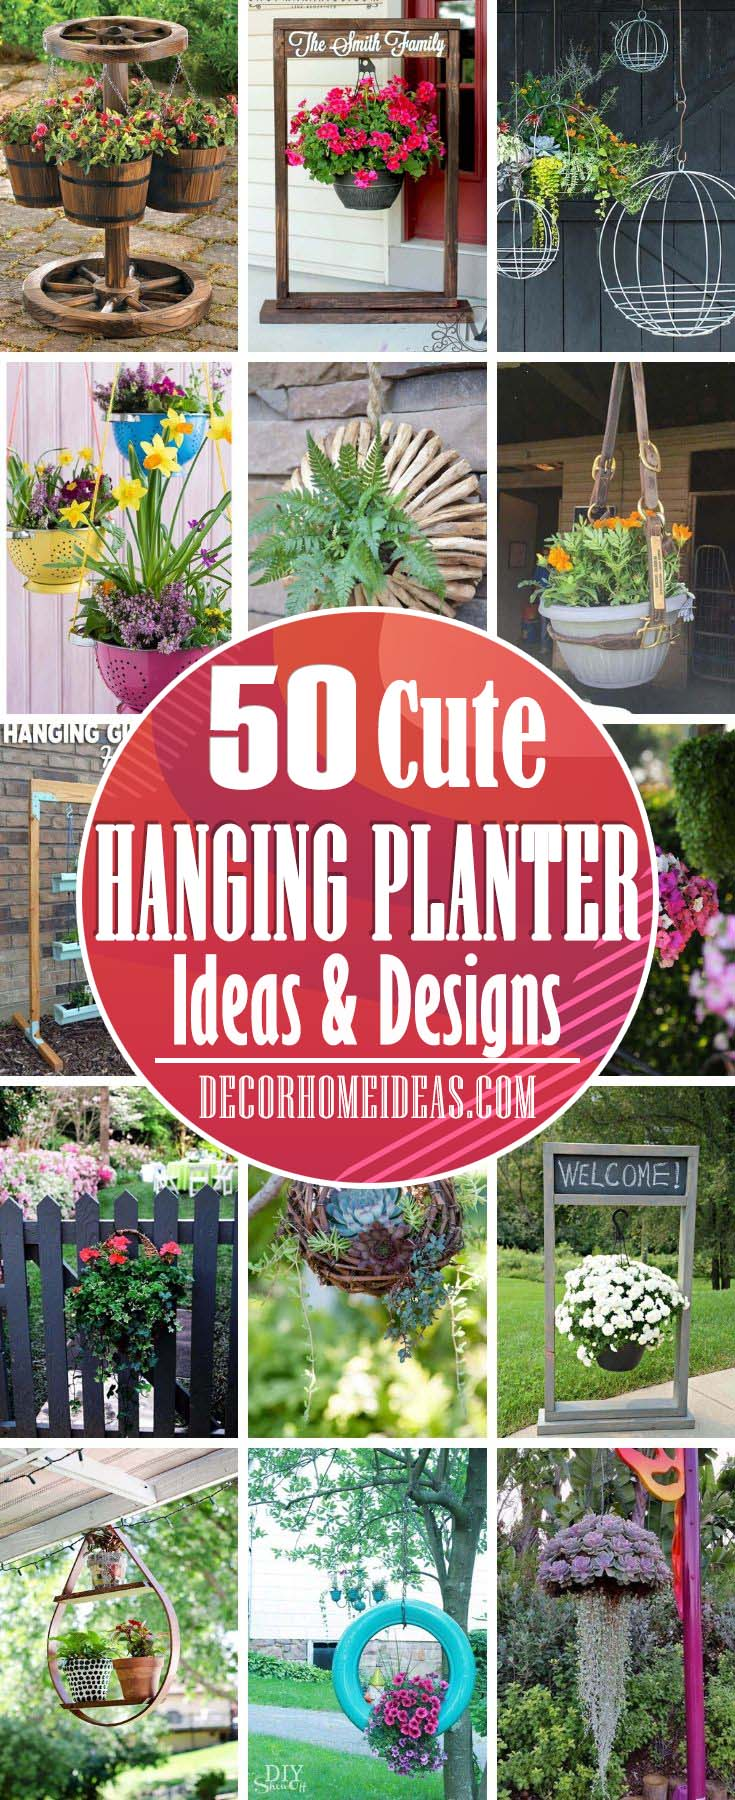 Best Hanging Planter Ideas. Are you looking for the best <a href=